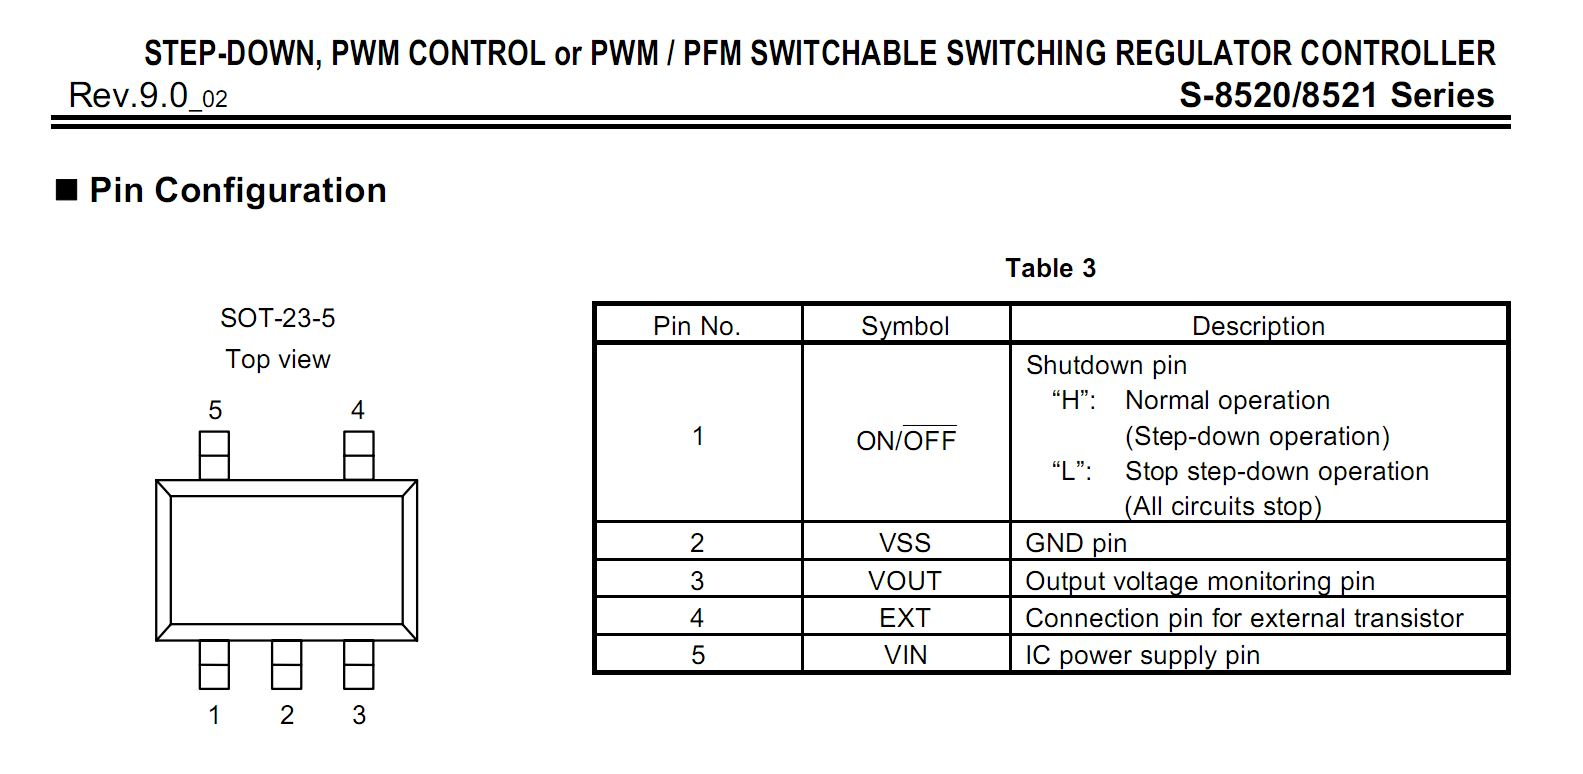 S-8520 switching regulator controller pinout